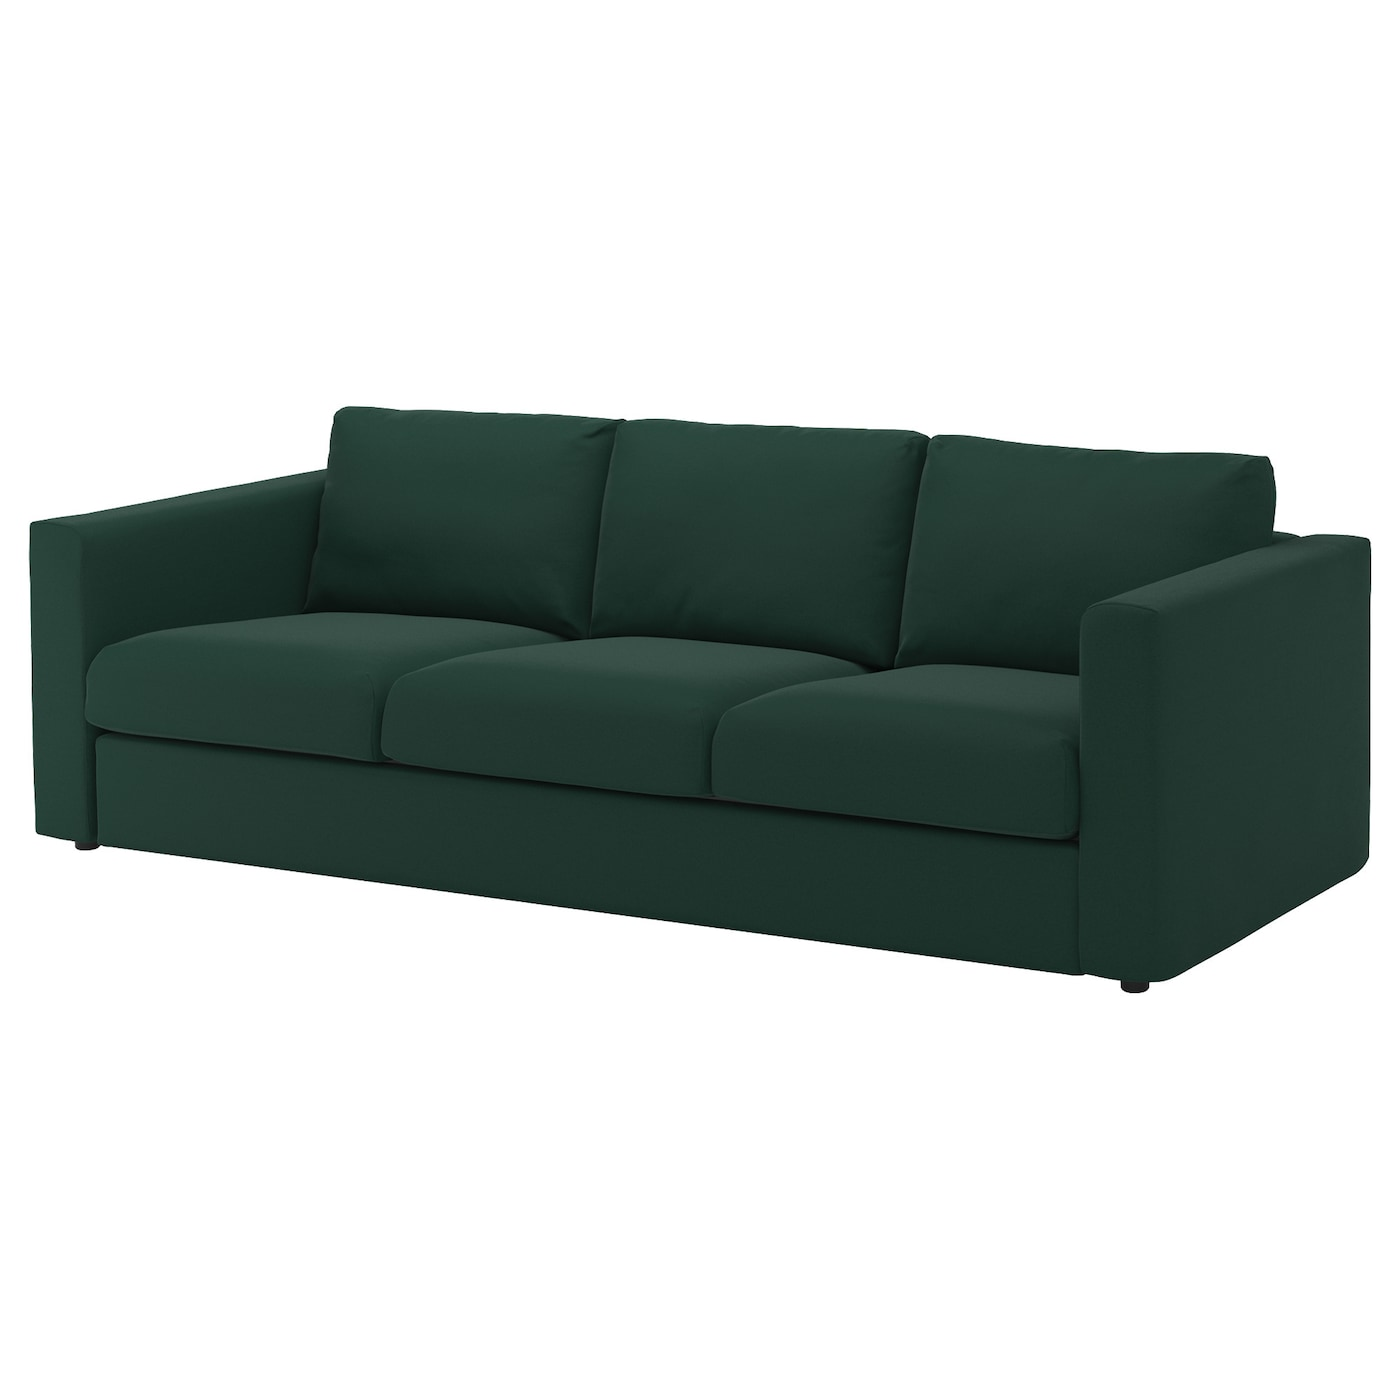 Image Result For Ikea Sofa Cover